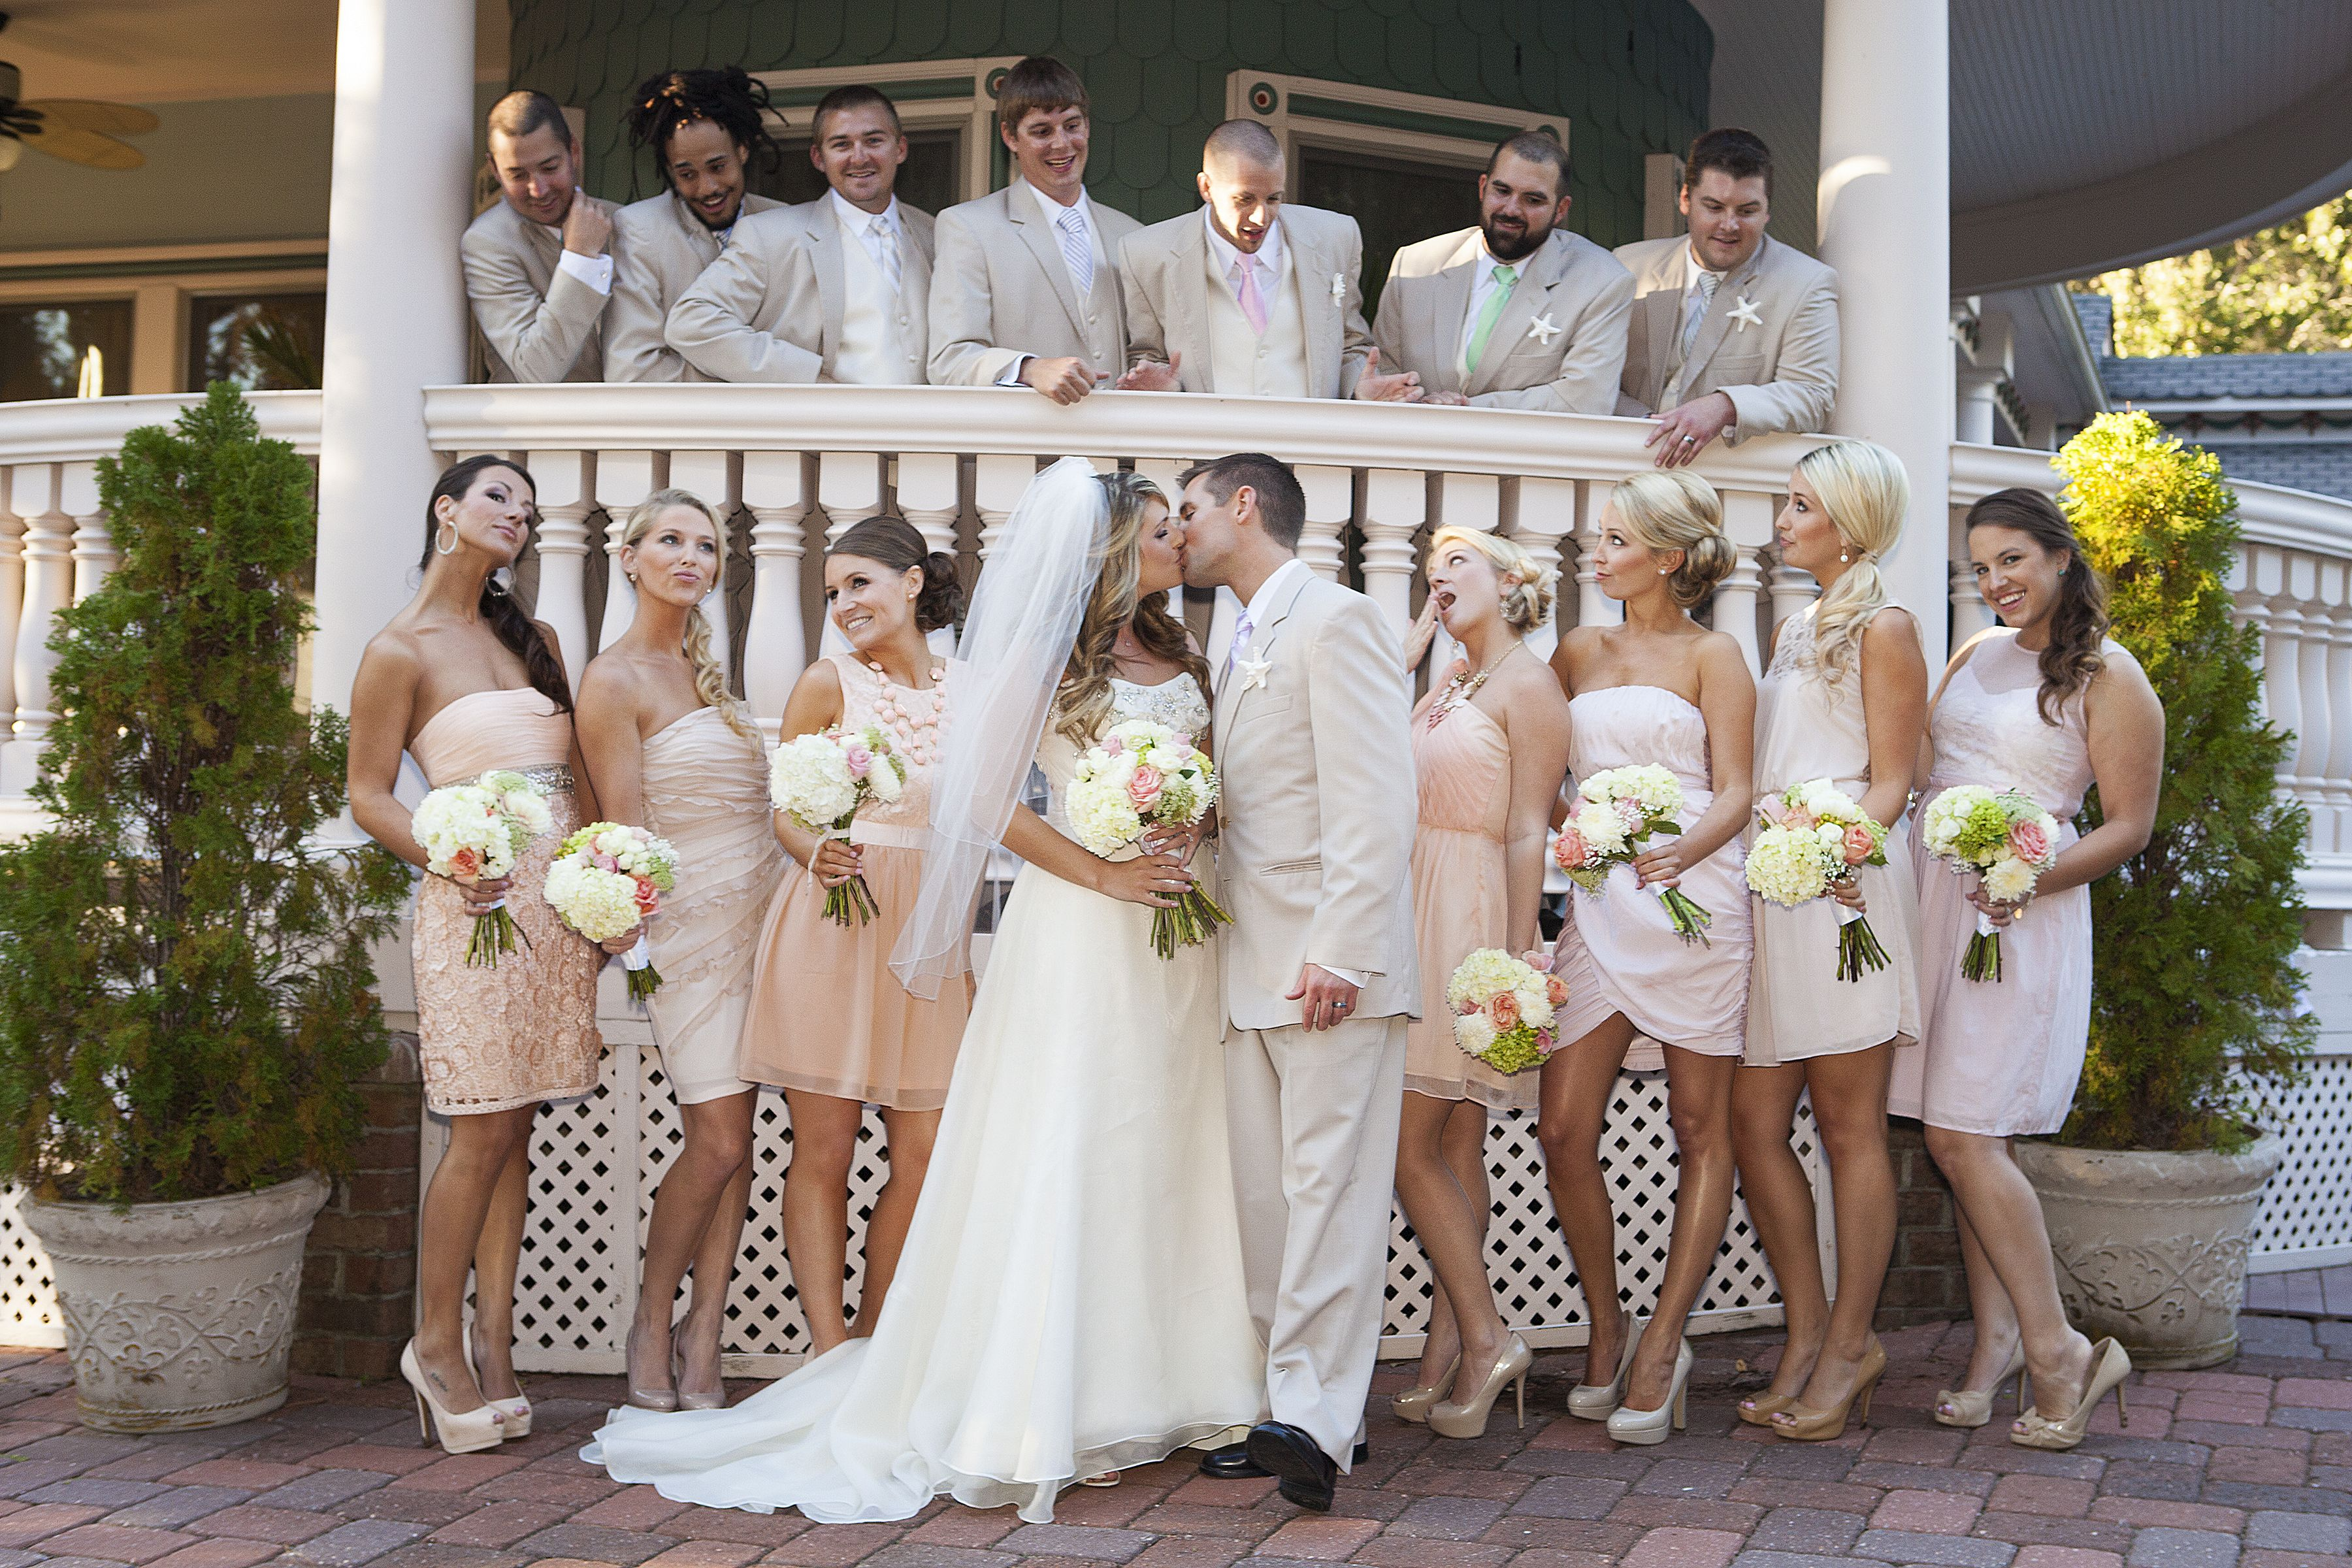 Blush Bridesmaid Dresses And Khaki Groomsmen Outfits Each Had A Diffe Style Dress The Guys All Ties Within Our Color